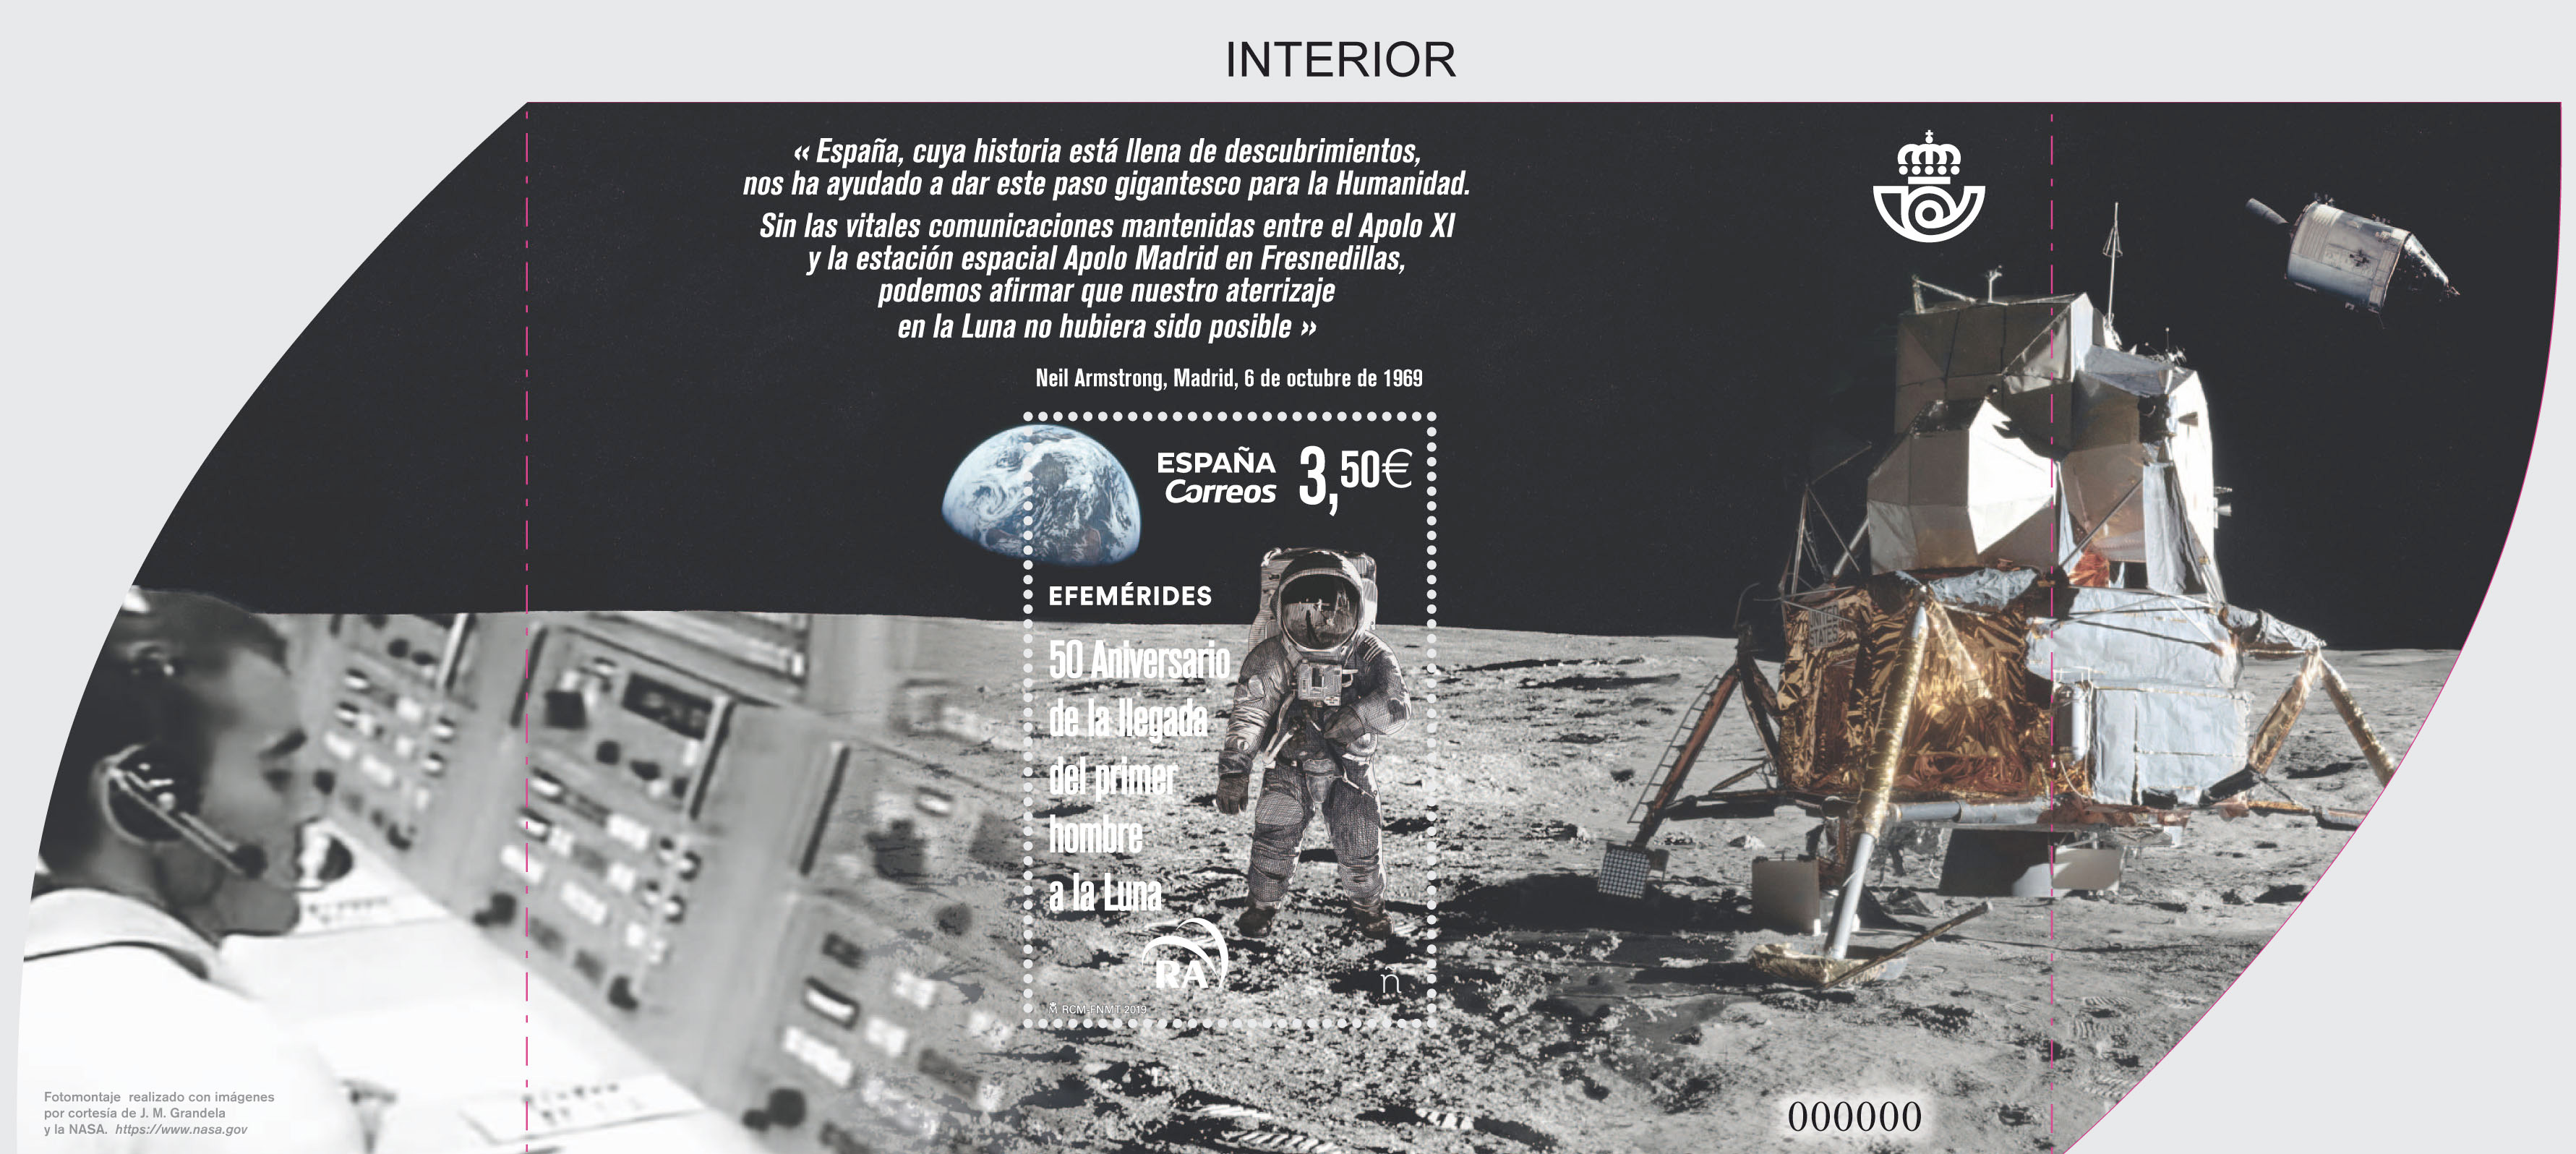 Correos (Spain) 'Man on the Moon 50th' stamp - collectSPACE